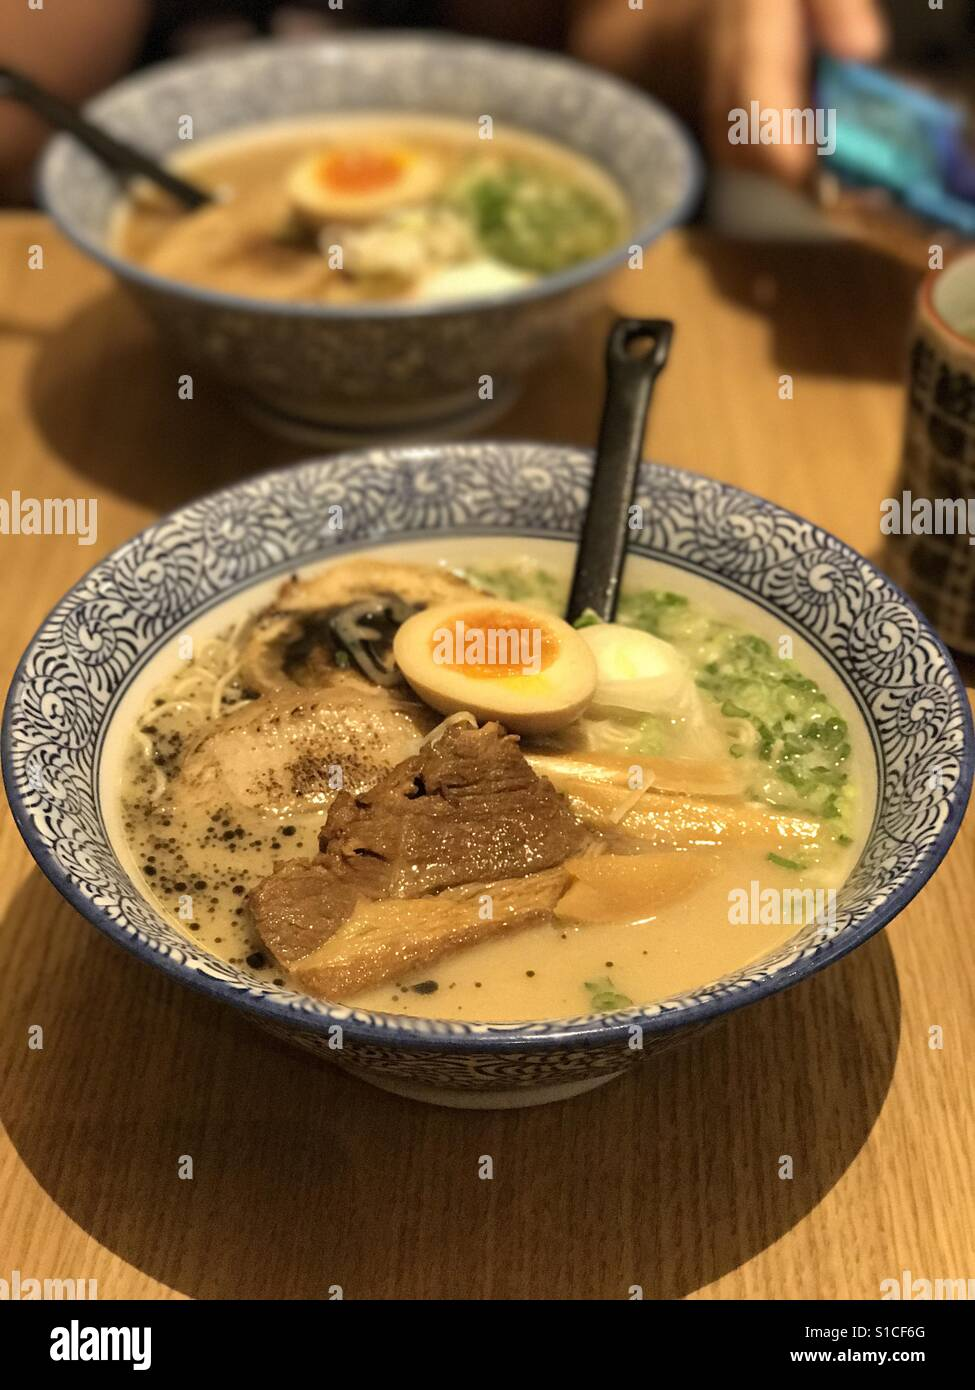 The Grand Tonkotsu Ramen- thick Tonkotsu soup base+thin chewy ramen+runny egg+3 type pork - Stock Image